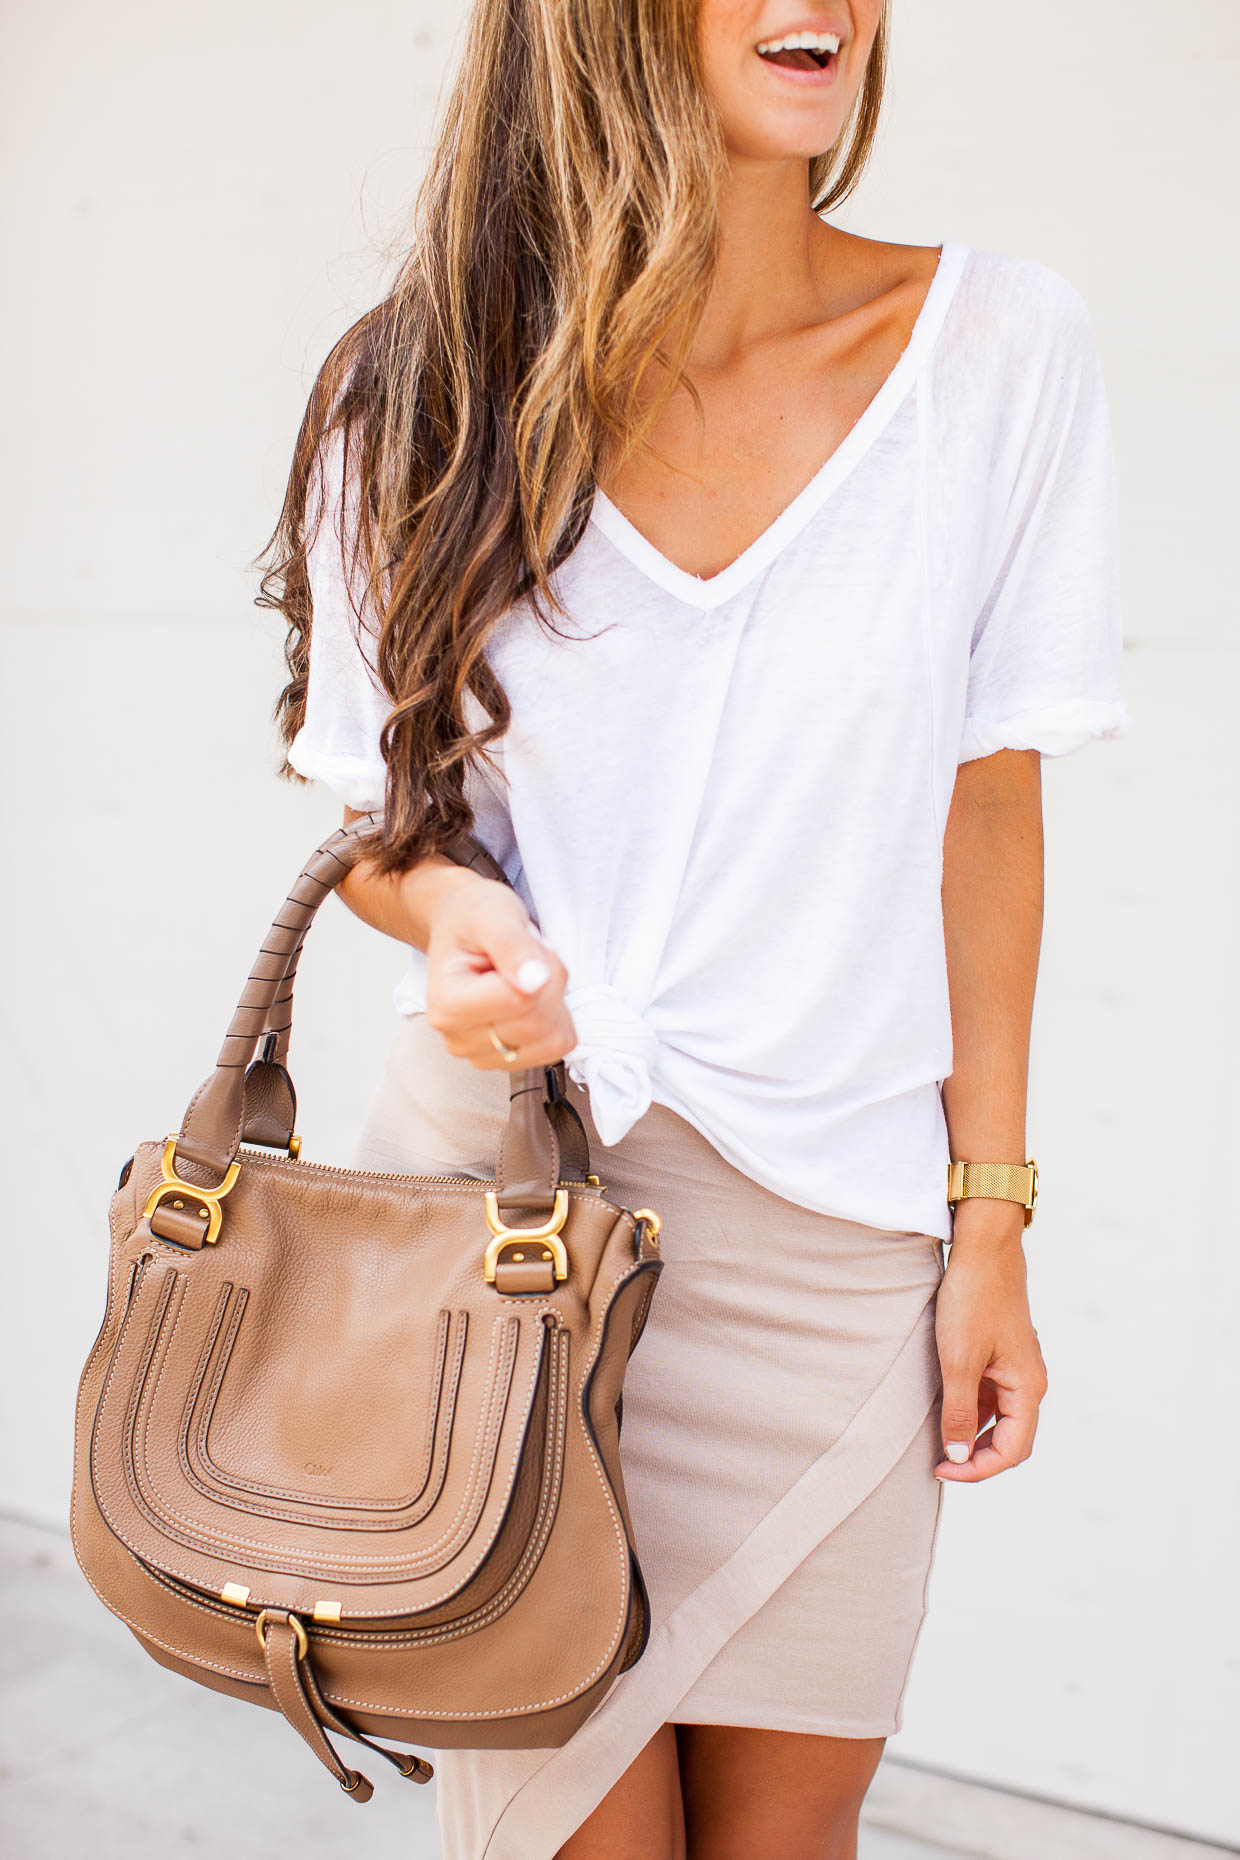 The Darling Detail styled a Free People Tee with the De Lacy Sara Skirt, accessorizing with the Chloe Marcie Small Leather Satchel, Le Specs 'The Prince' Sunglasses, and a Larsson & Jennings Watch.